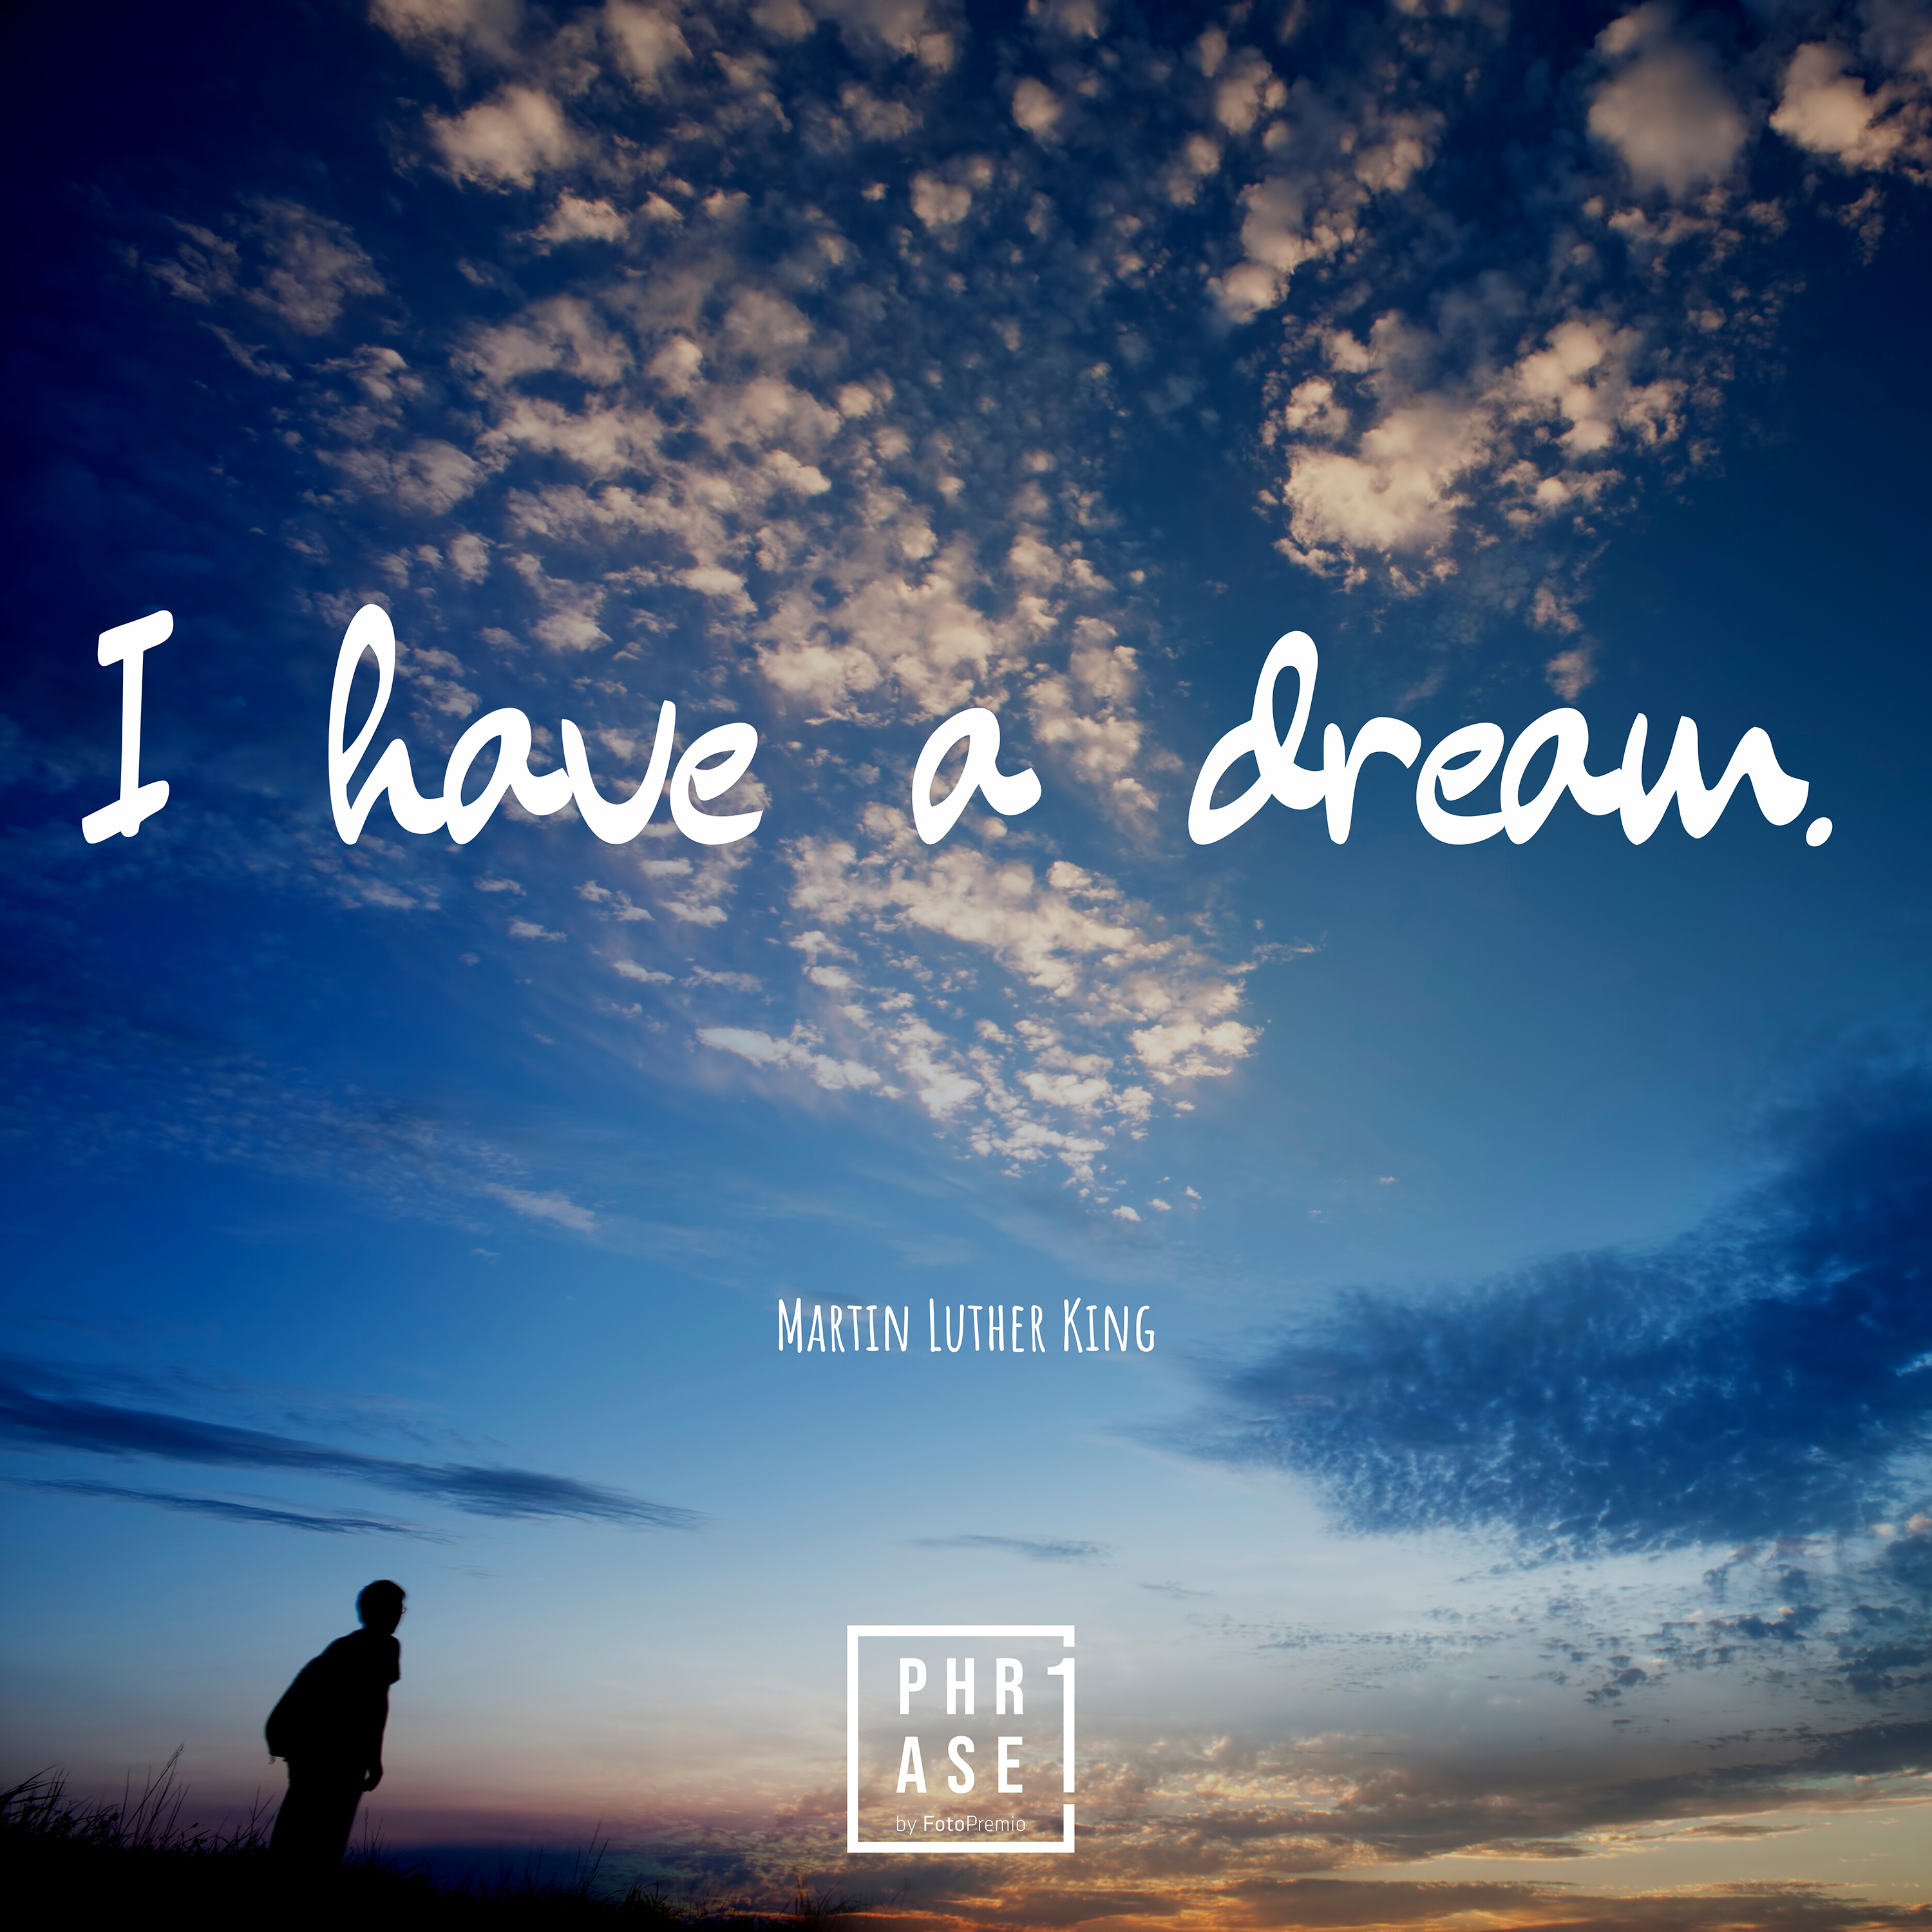 I have a dream. - Martin Luther King⠀